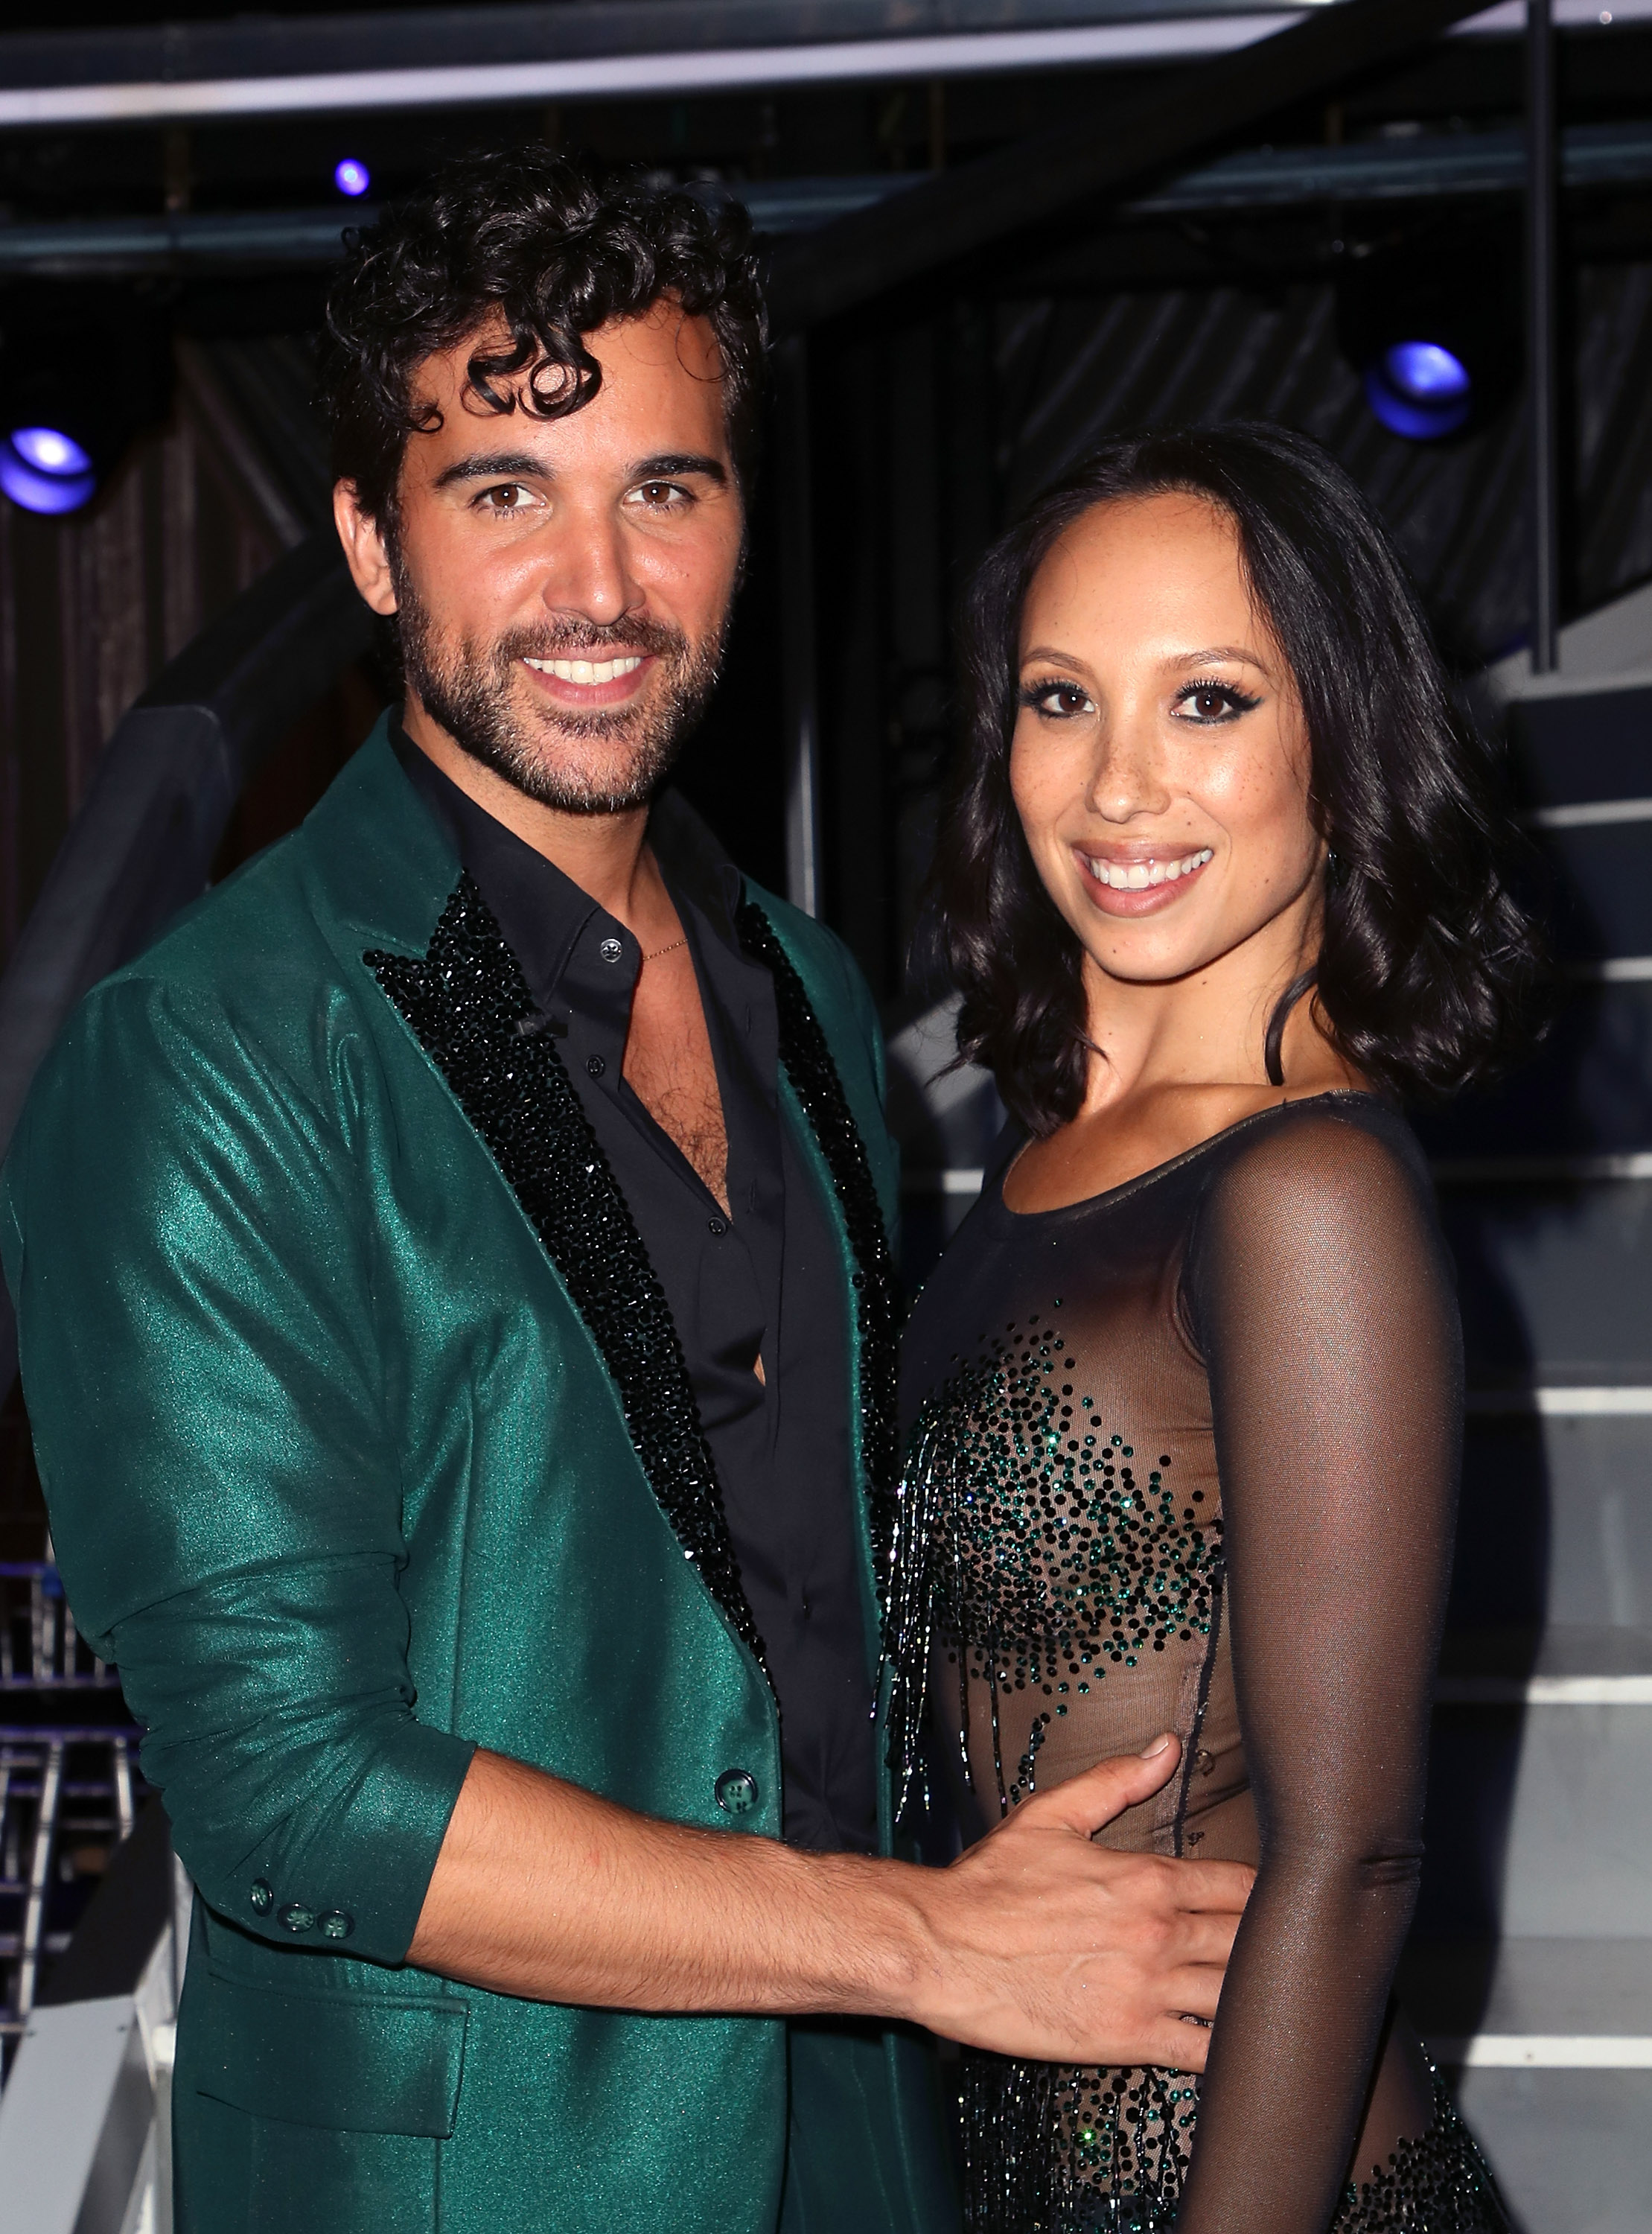 Juan Pablo Di Pace (L) and Cheryl Burke pose at 'Dancing with the Stars' Season 27 at CBS Television City on September 24, 2018 in Los Angeles, California.